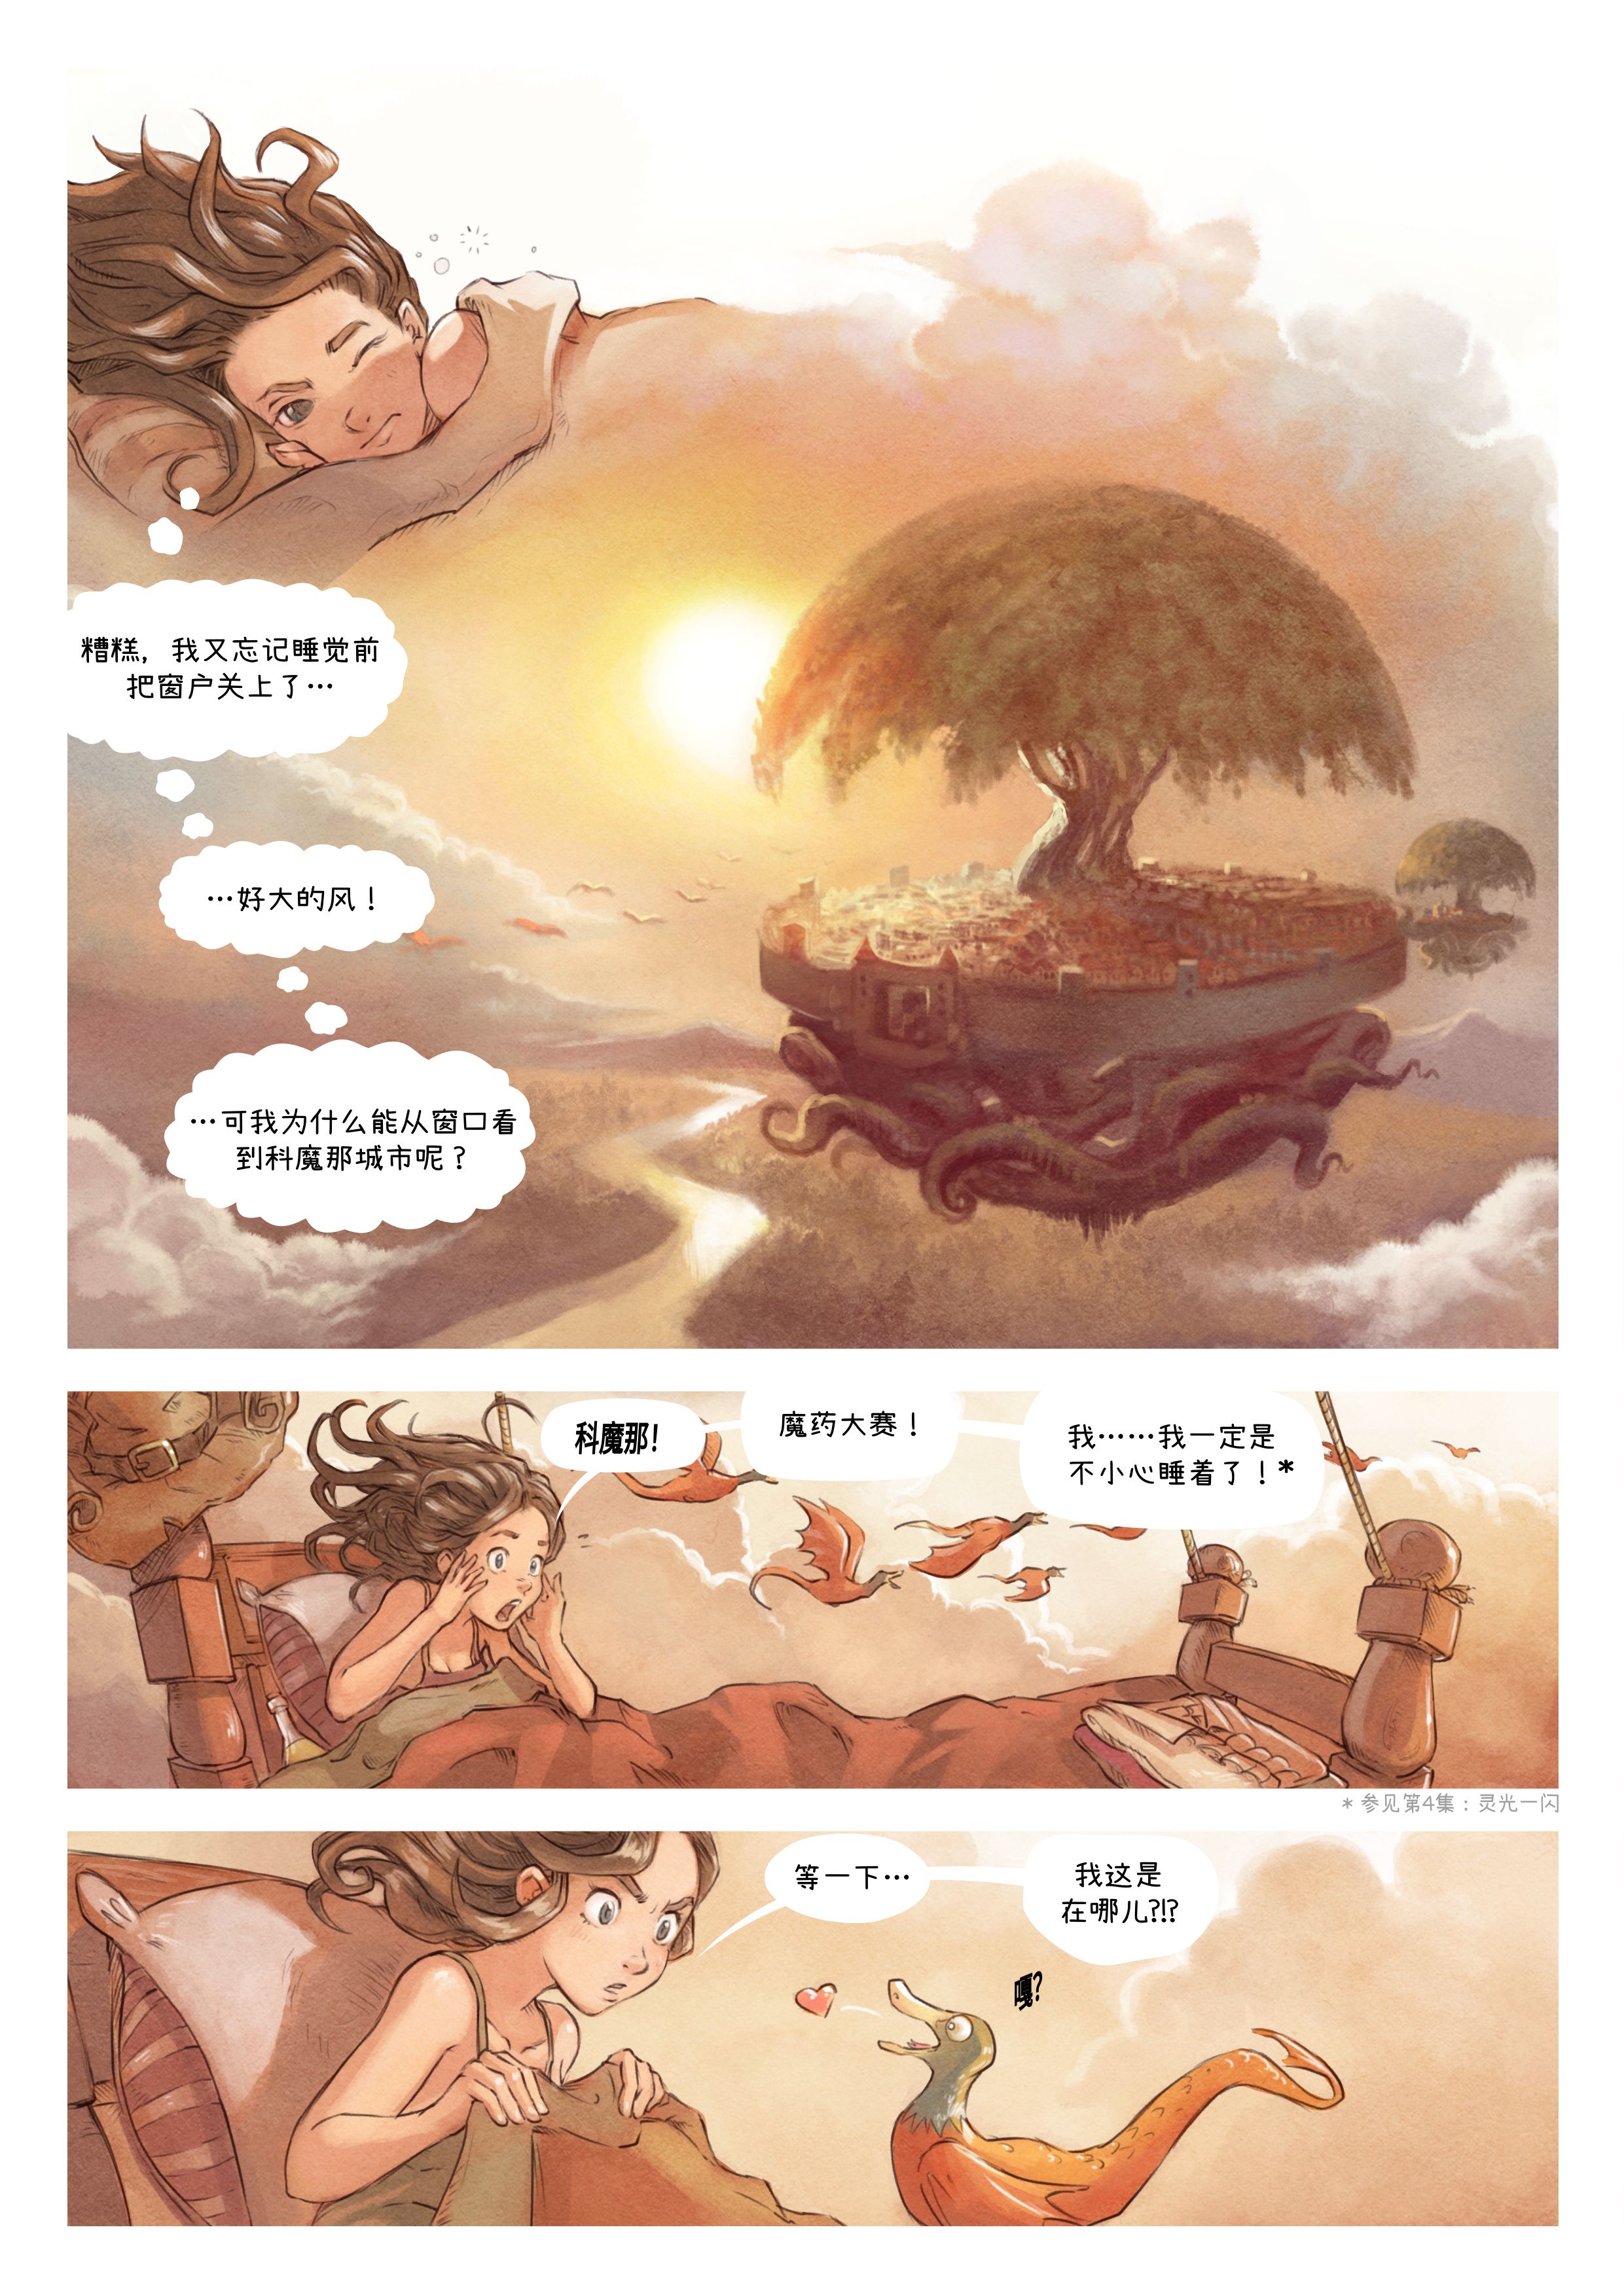 A webcomic page of Pepper&Carrot, 漫画全集 6 [cn], 页面 1